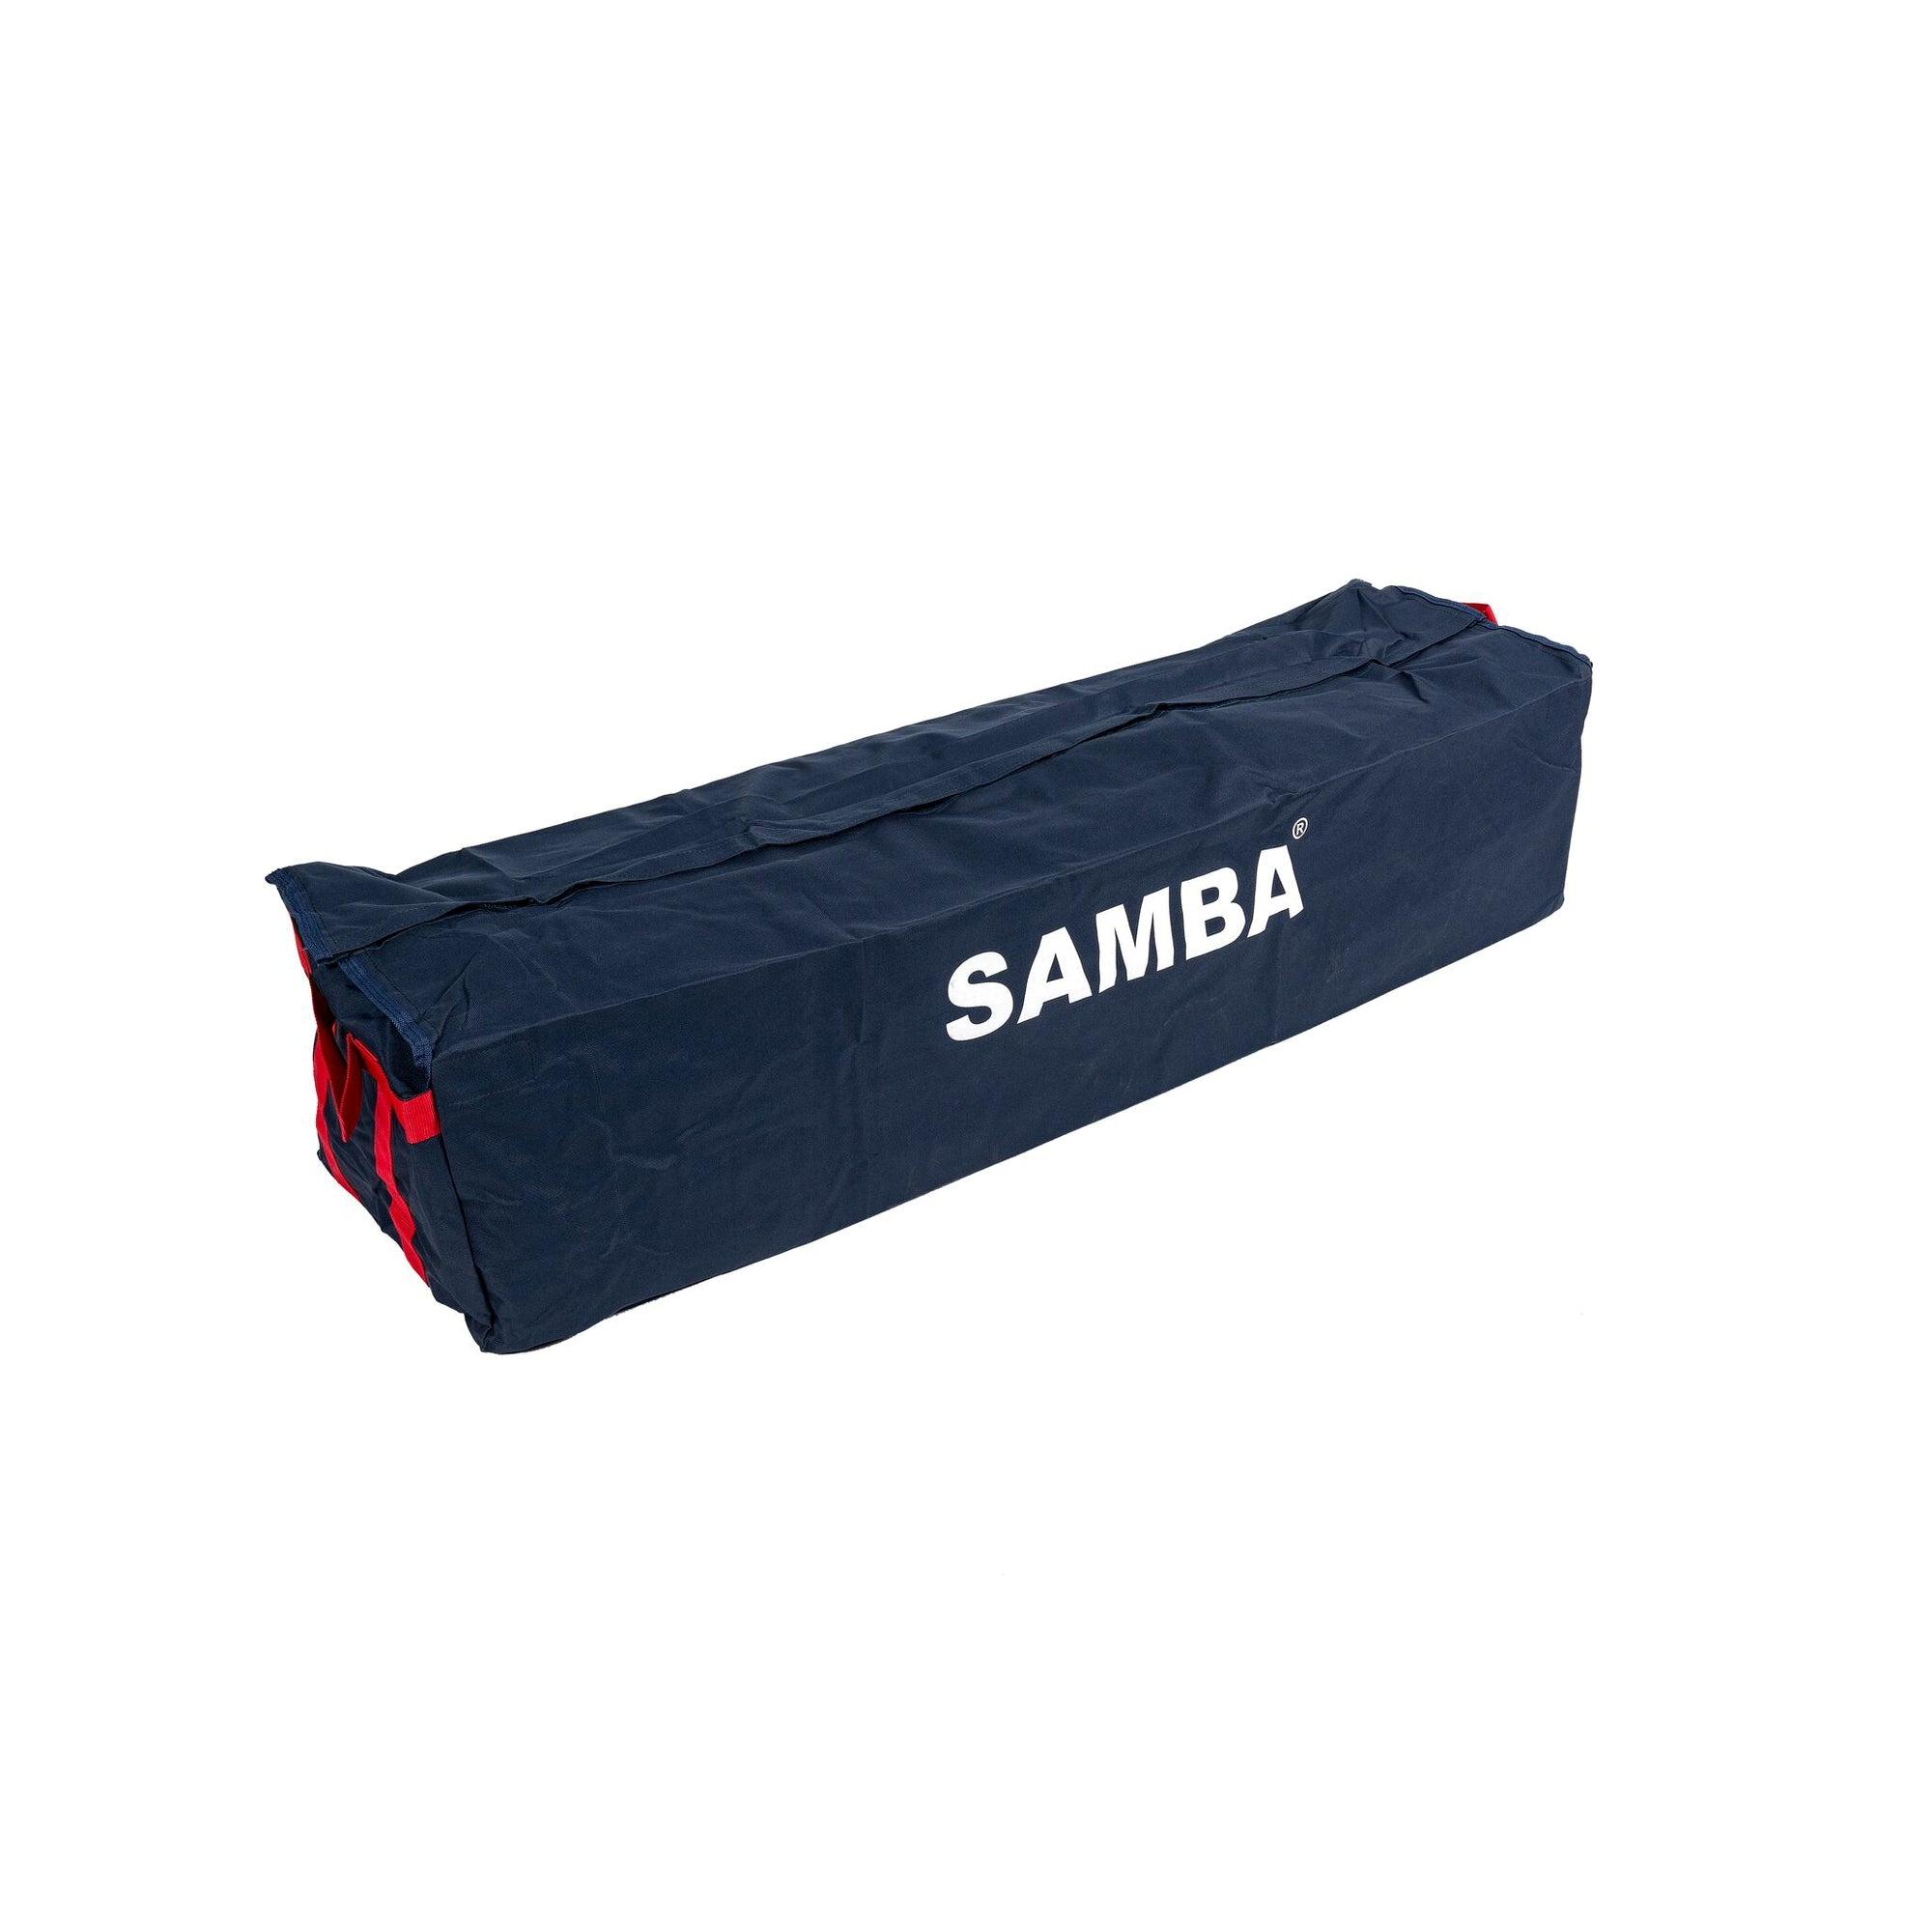 Samba Multi Goal Carry Bag in navy with white Samba logo on the side